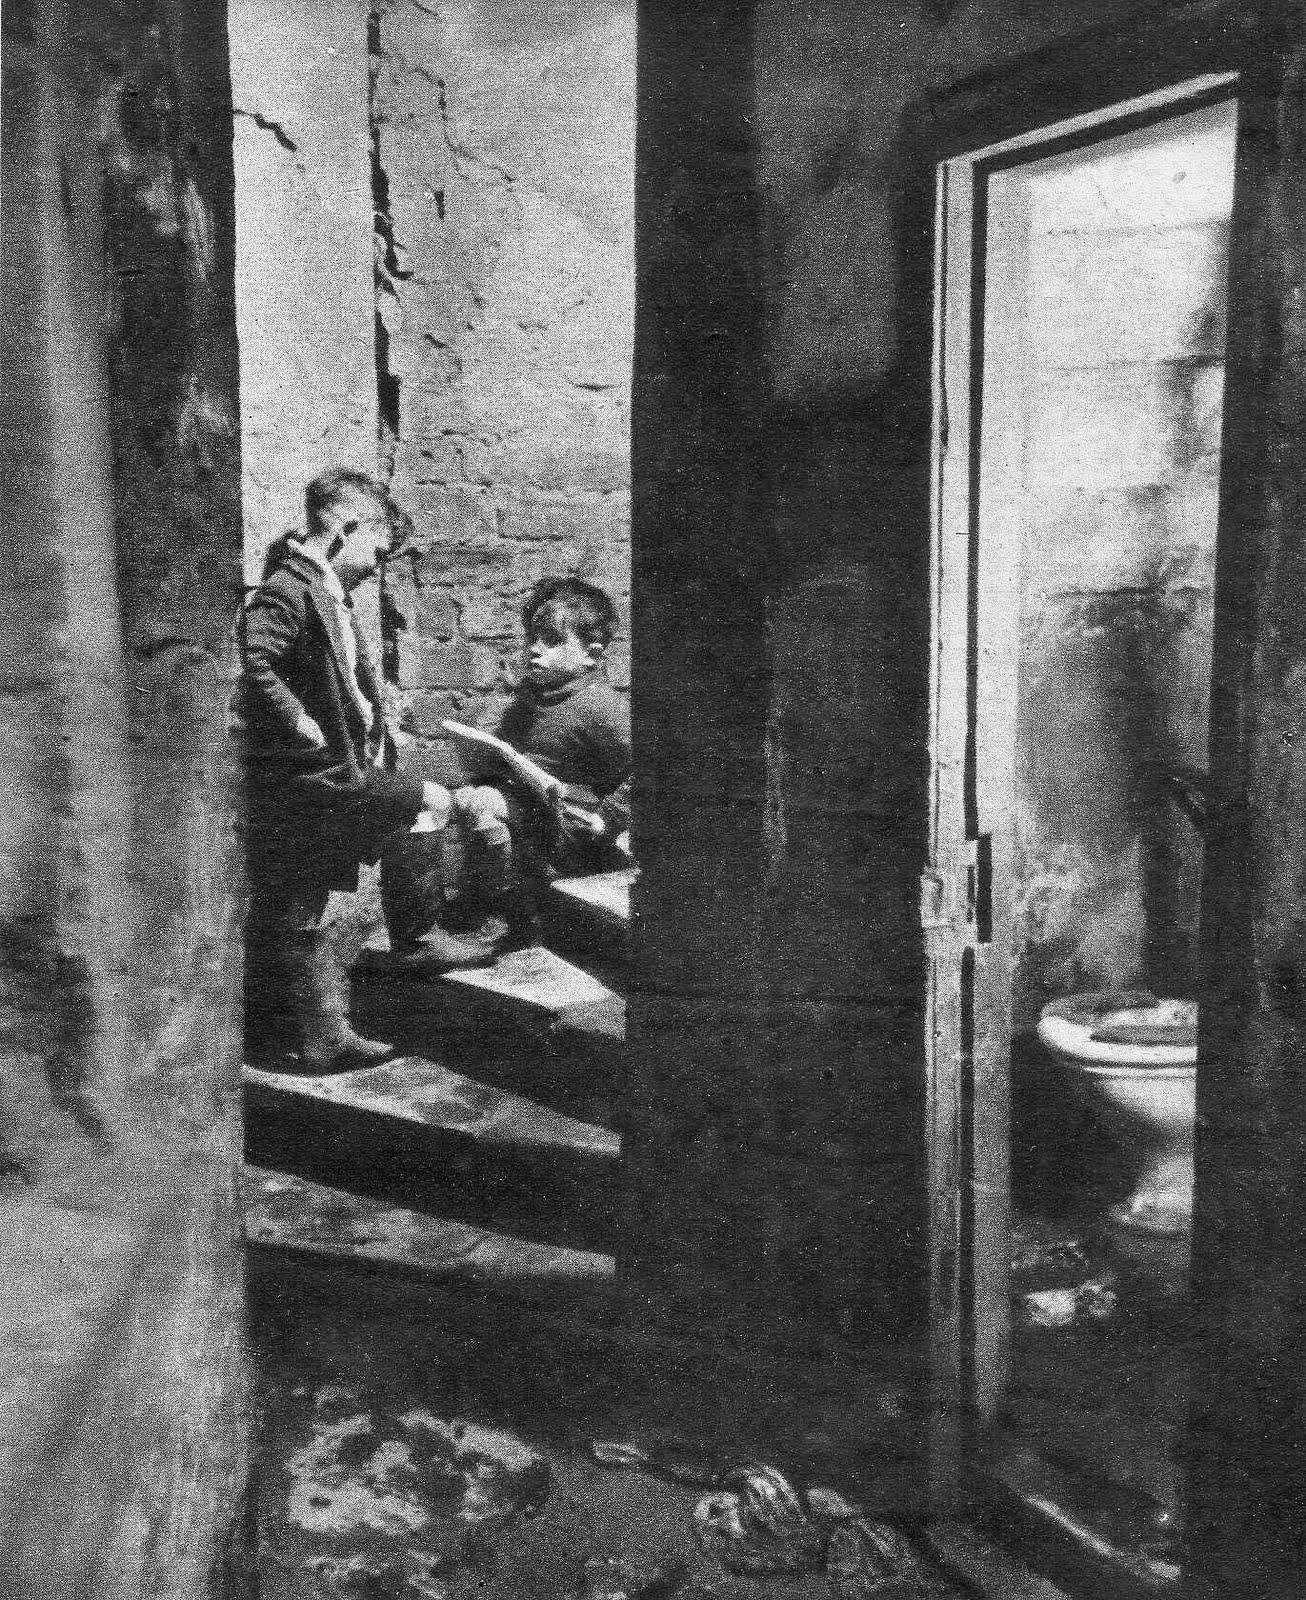 Hayes Peoples History 1948 The Forgotten Gorbals